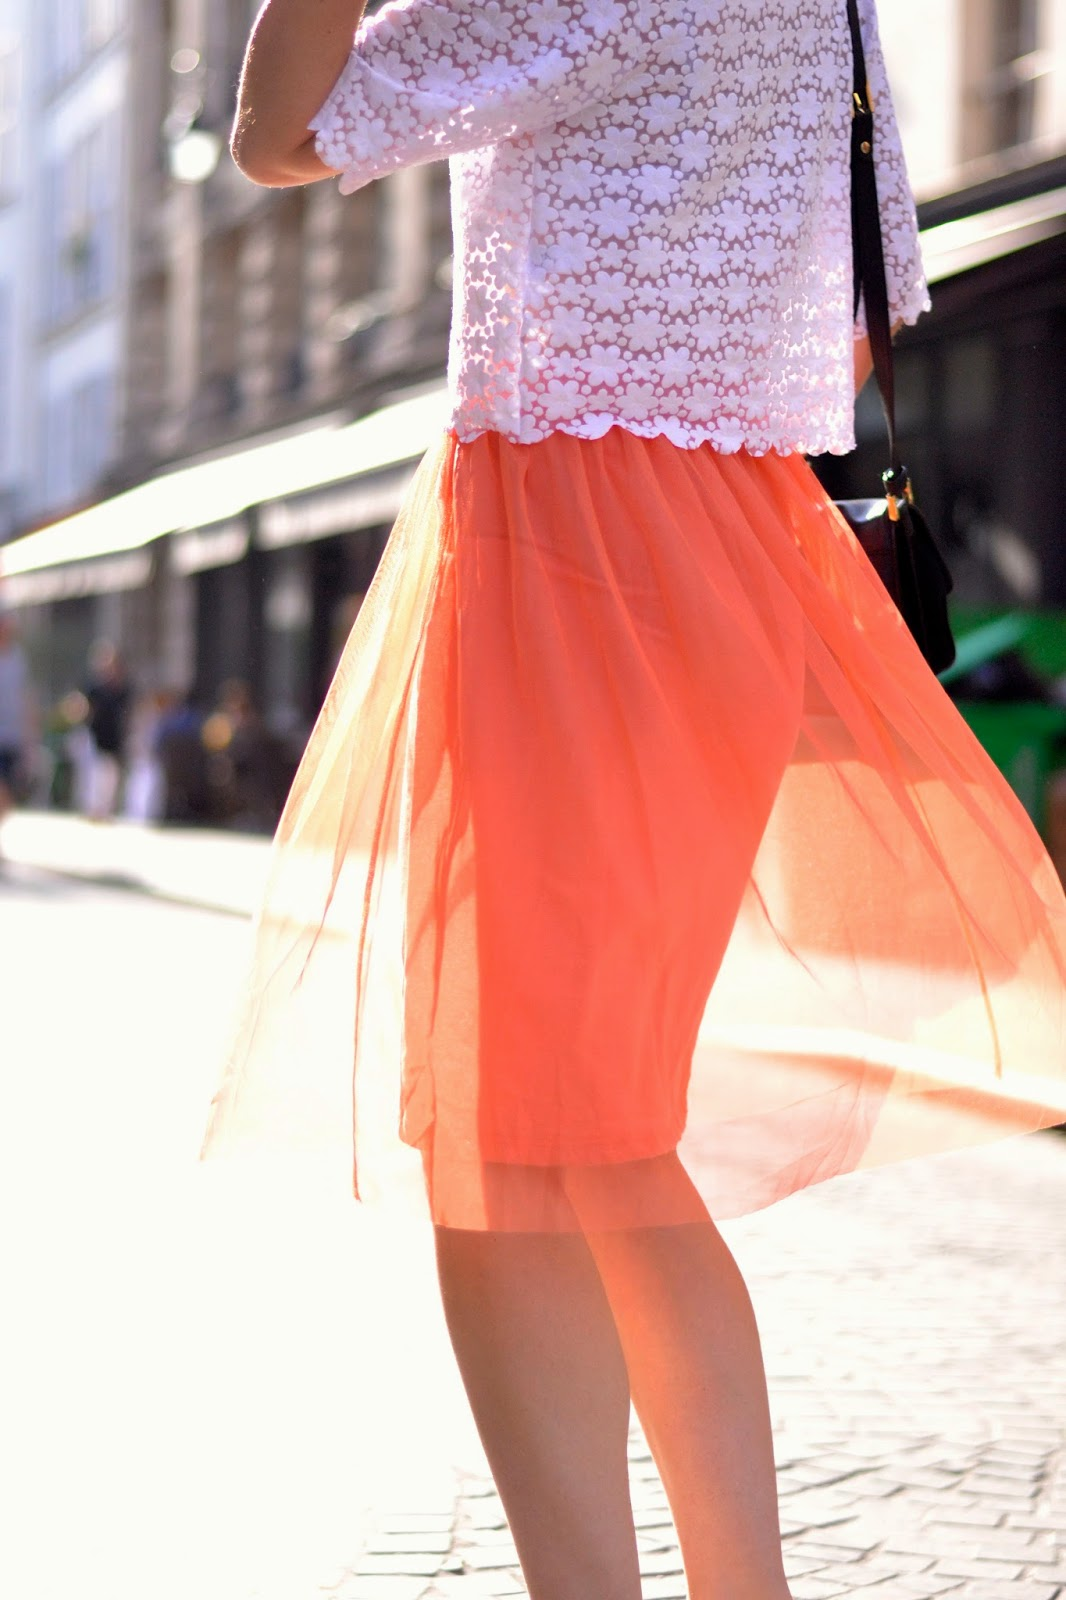 Floaty skirt